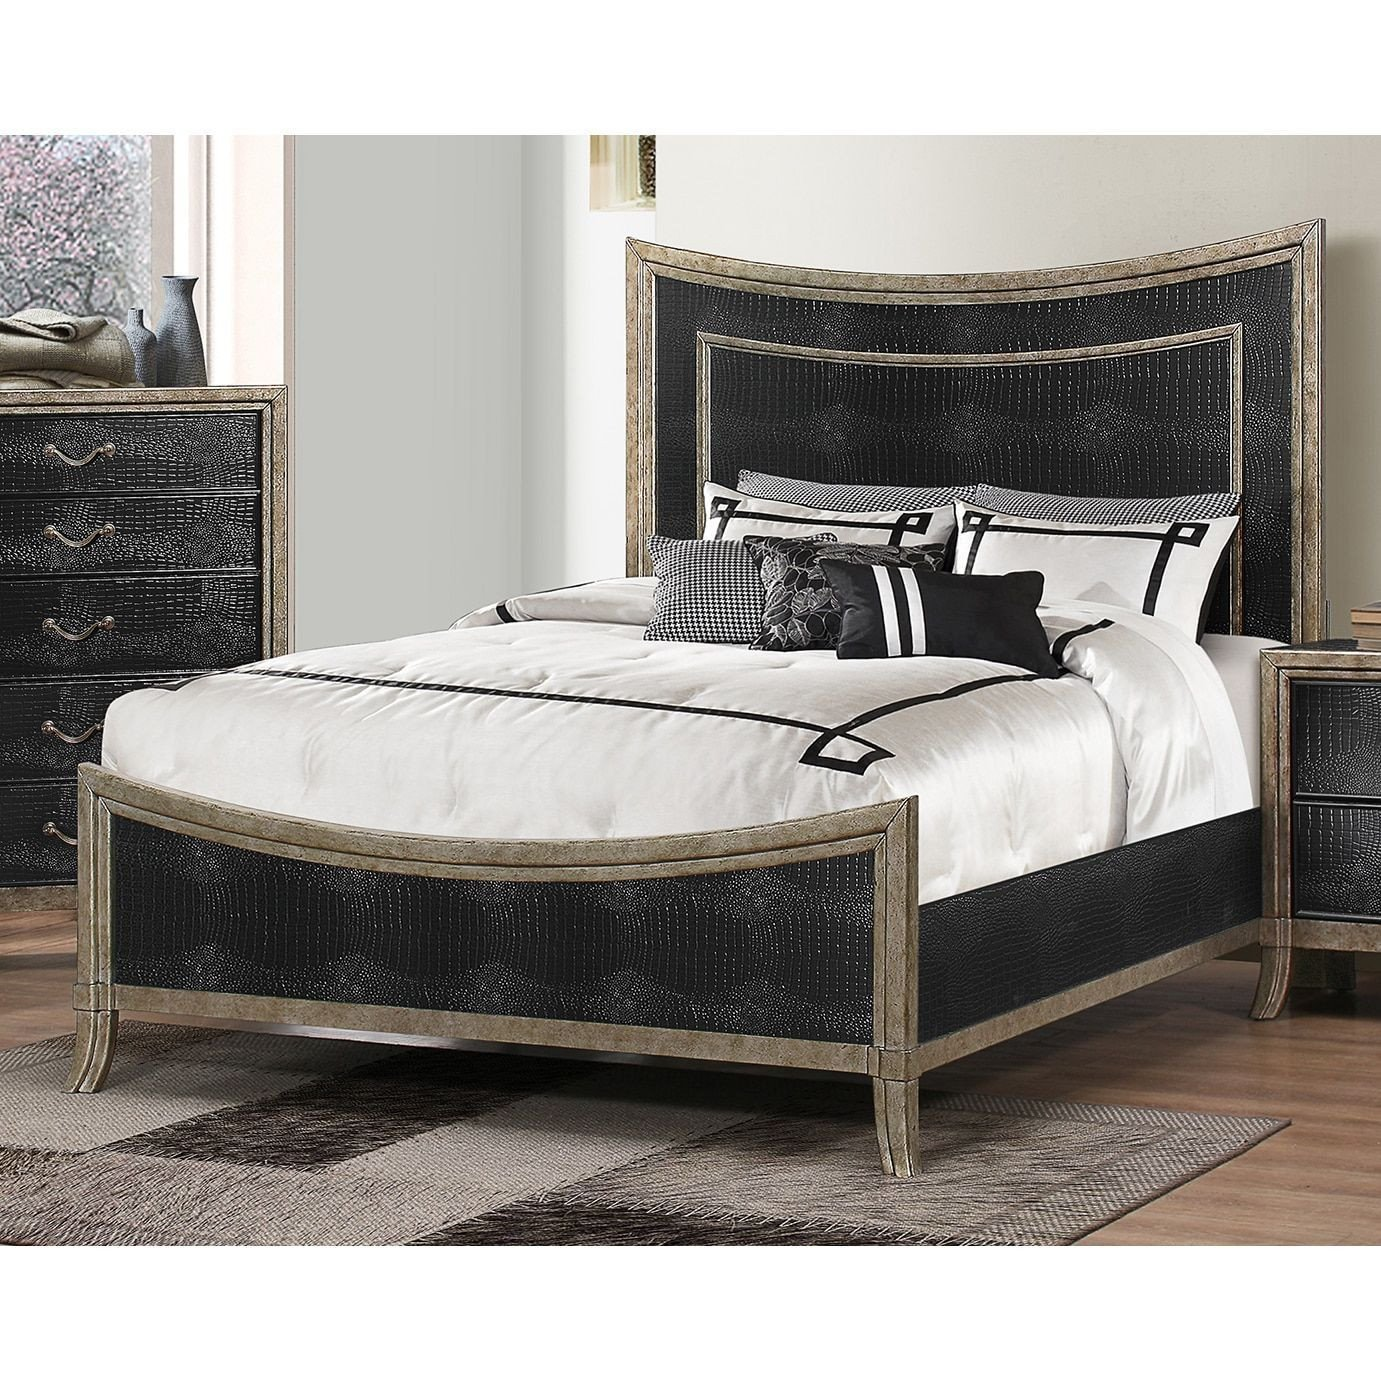 Black Bedroom Set Queen Luxury Simmons San Juan Collection Queen King Bed Queen Black